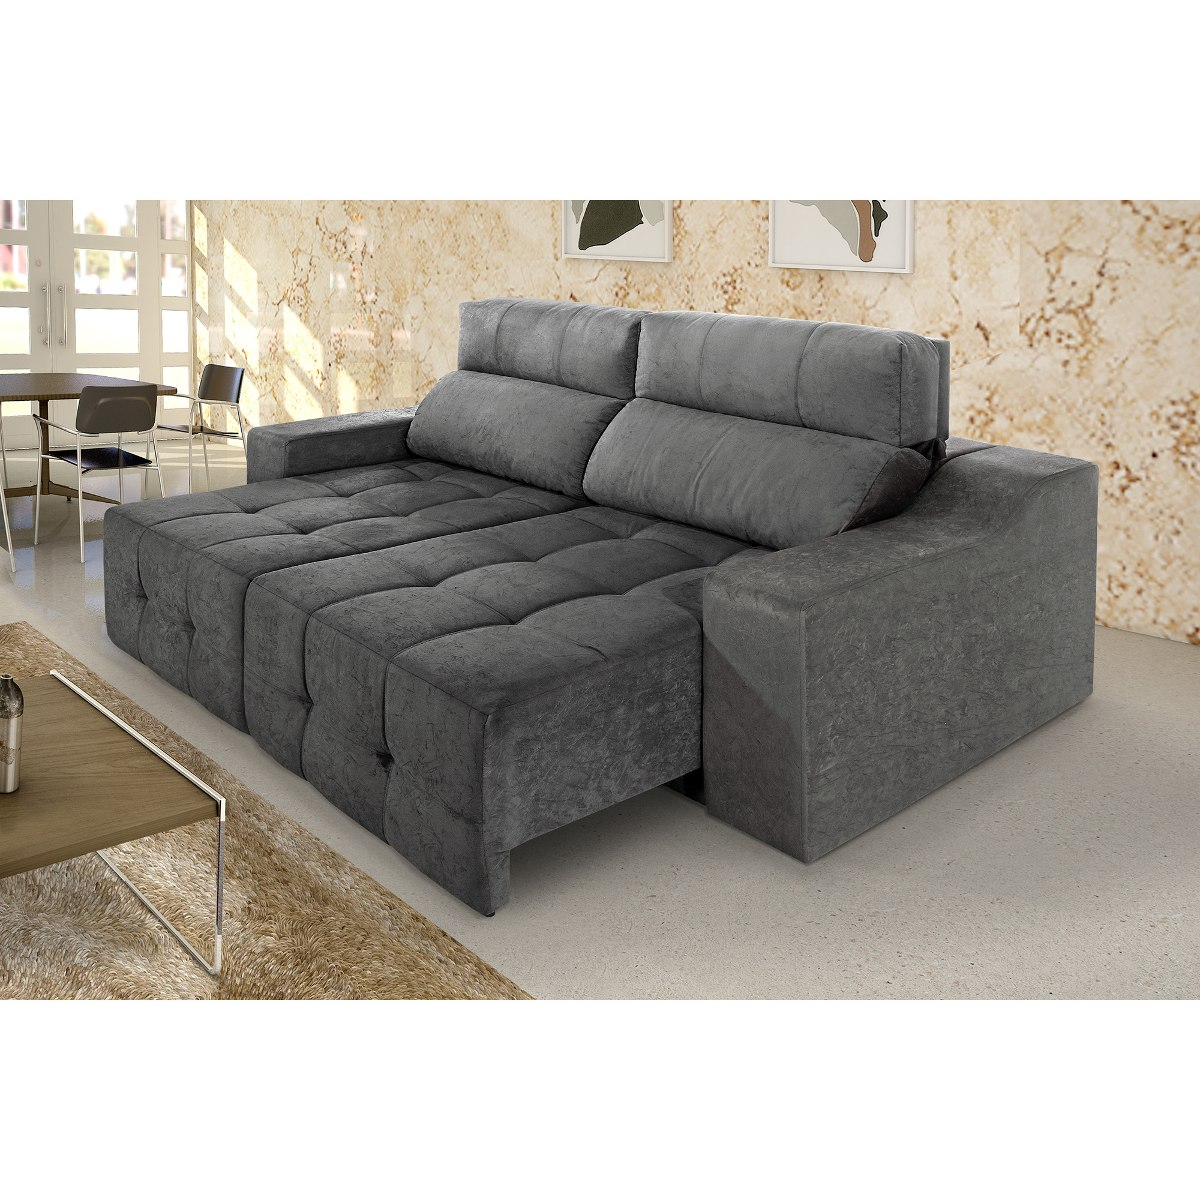 Sofa Retratil E Reclinavel Submarino Sofá 3 Lugares Connect Plus Retrátil Reclinável Suede Cinza